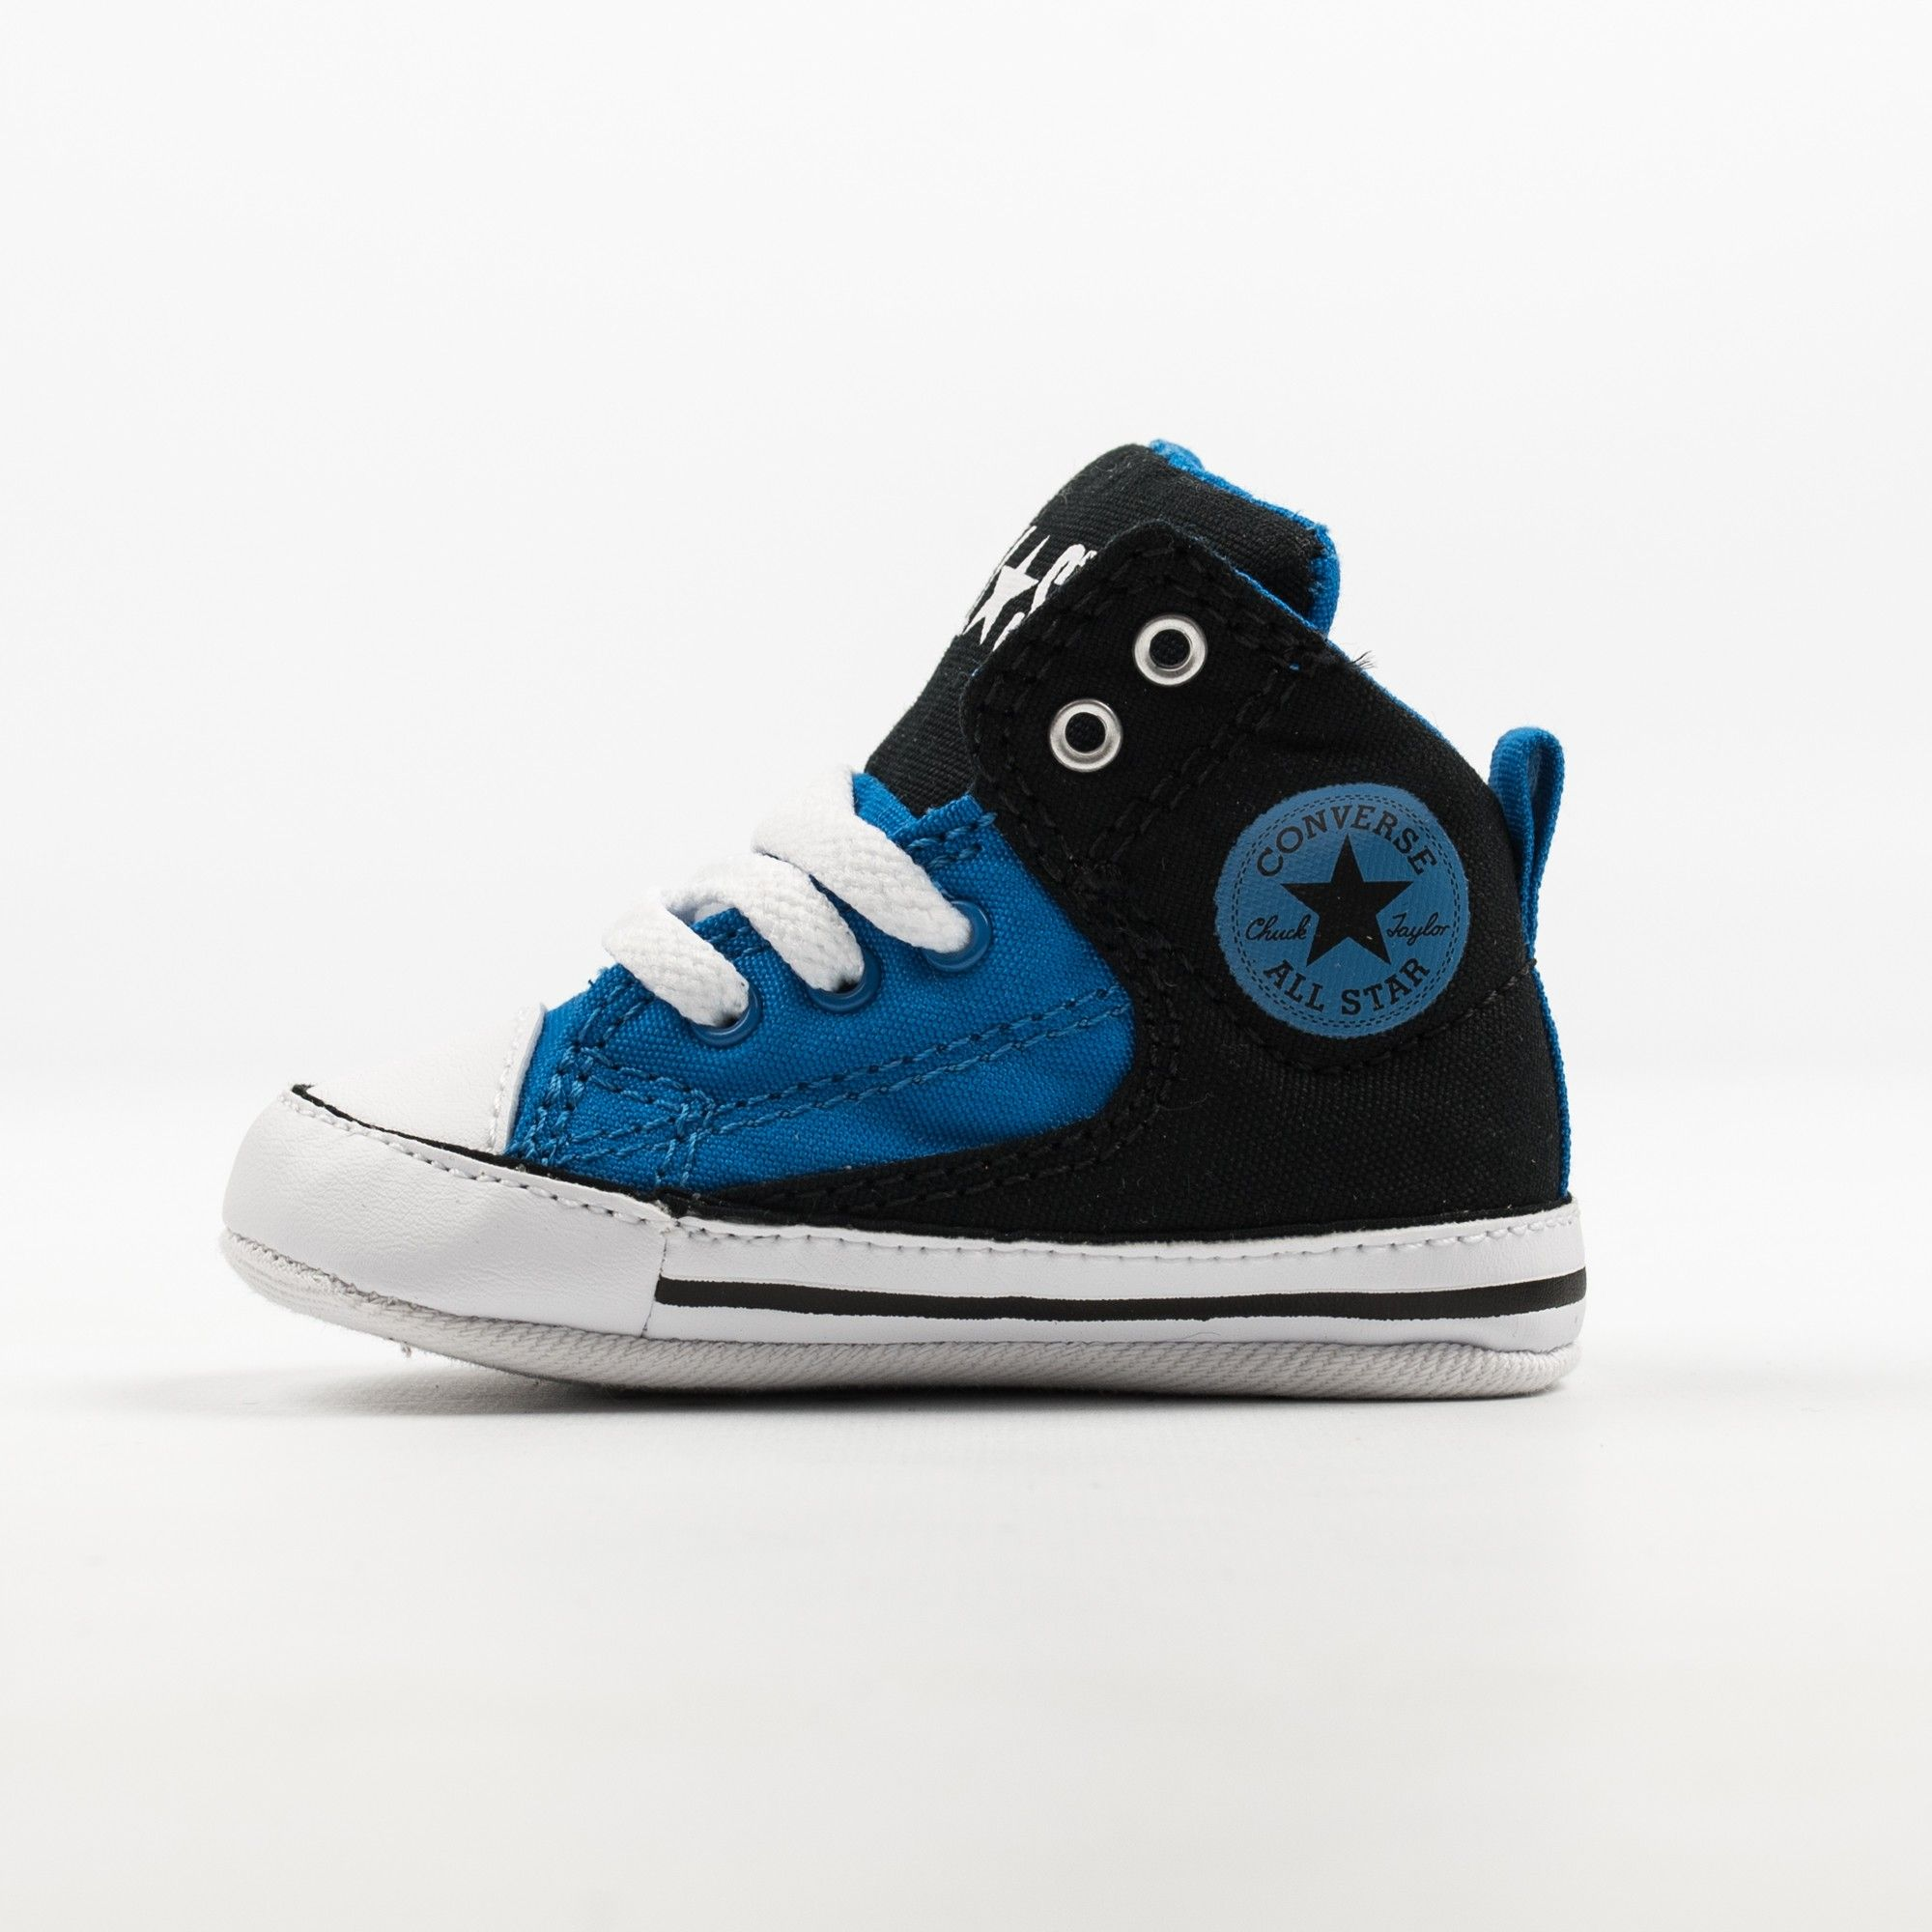 71708d2b8825 Converse Chuck Taylor All Star First Star High Street Hi blue-black lace-up canvas  baby sneakers